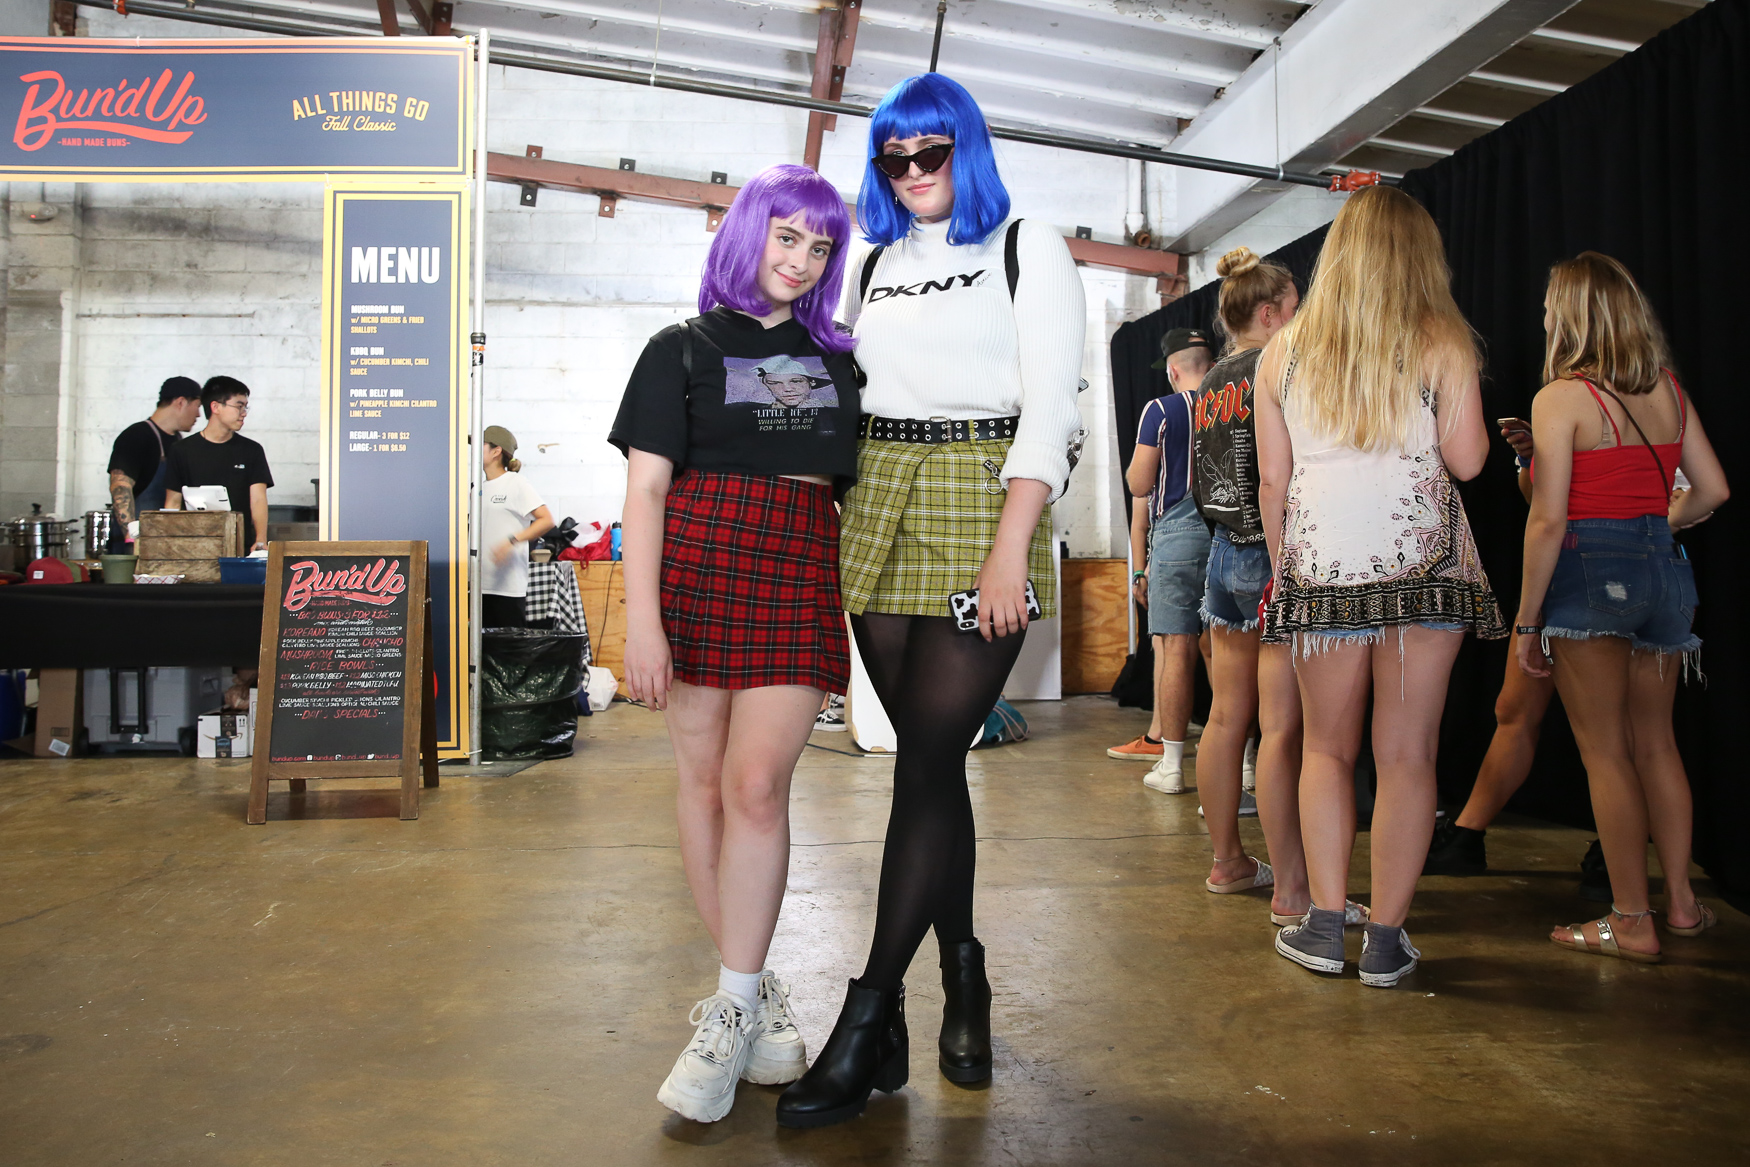 All Things Go brought some amazing musical talent to Union Market's stage but, out in the crowd, Washingtonians shared their eye for style. Here are some of the best and most interesting looks we saw this weekend. (Amanda Andrade-Rhoades/DC Refined)